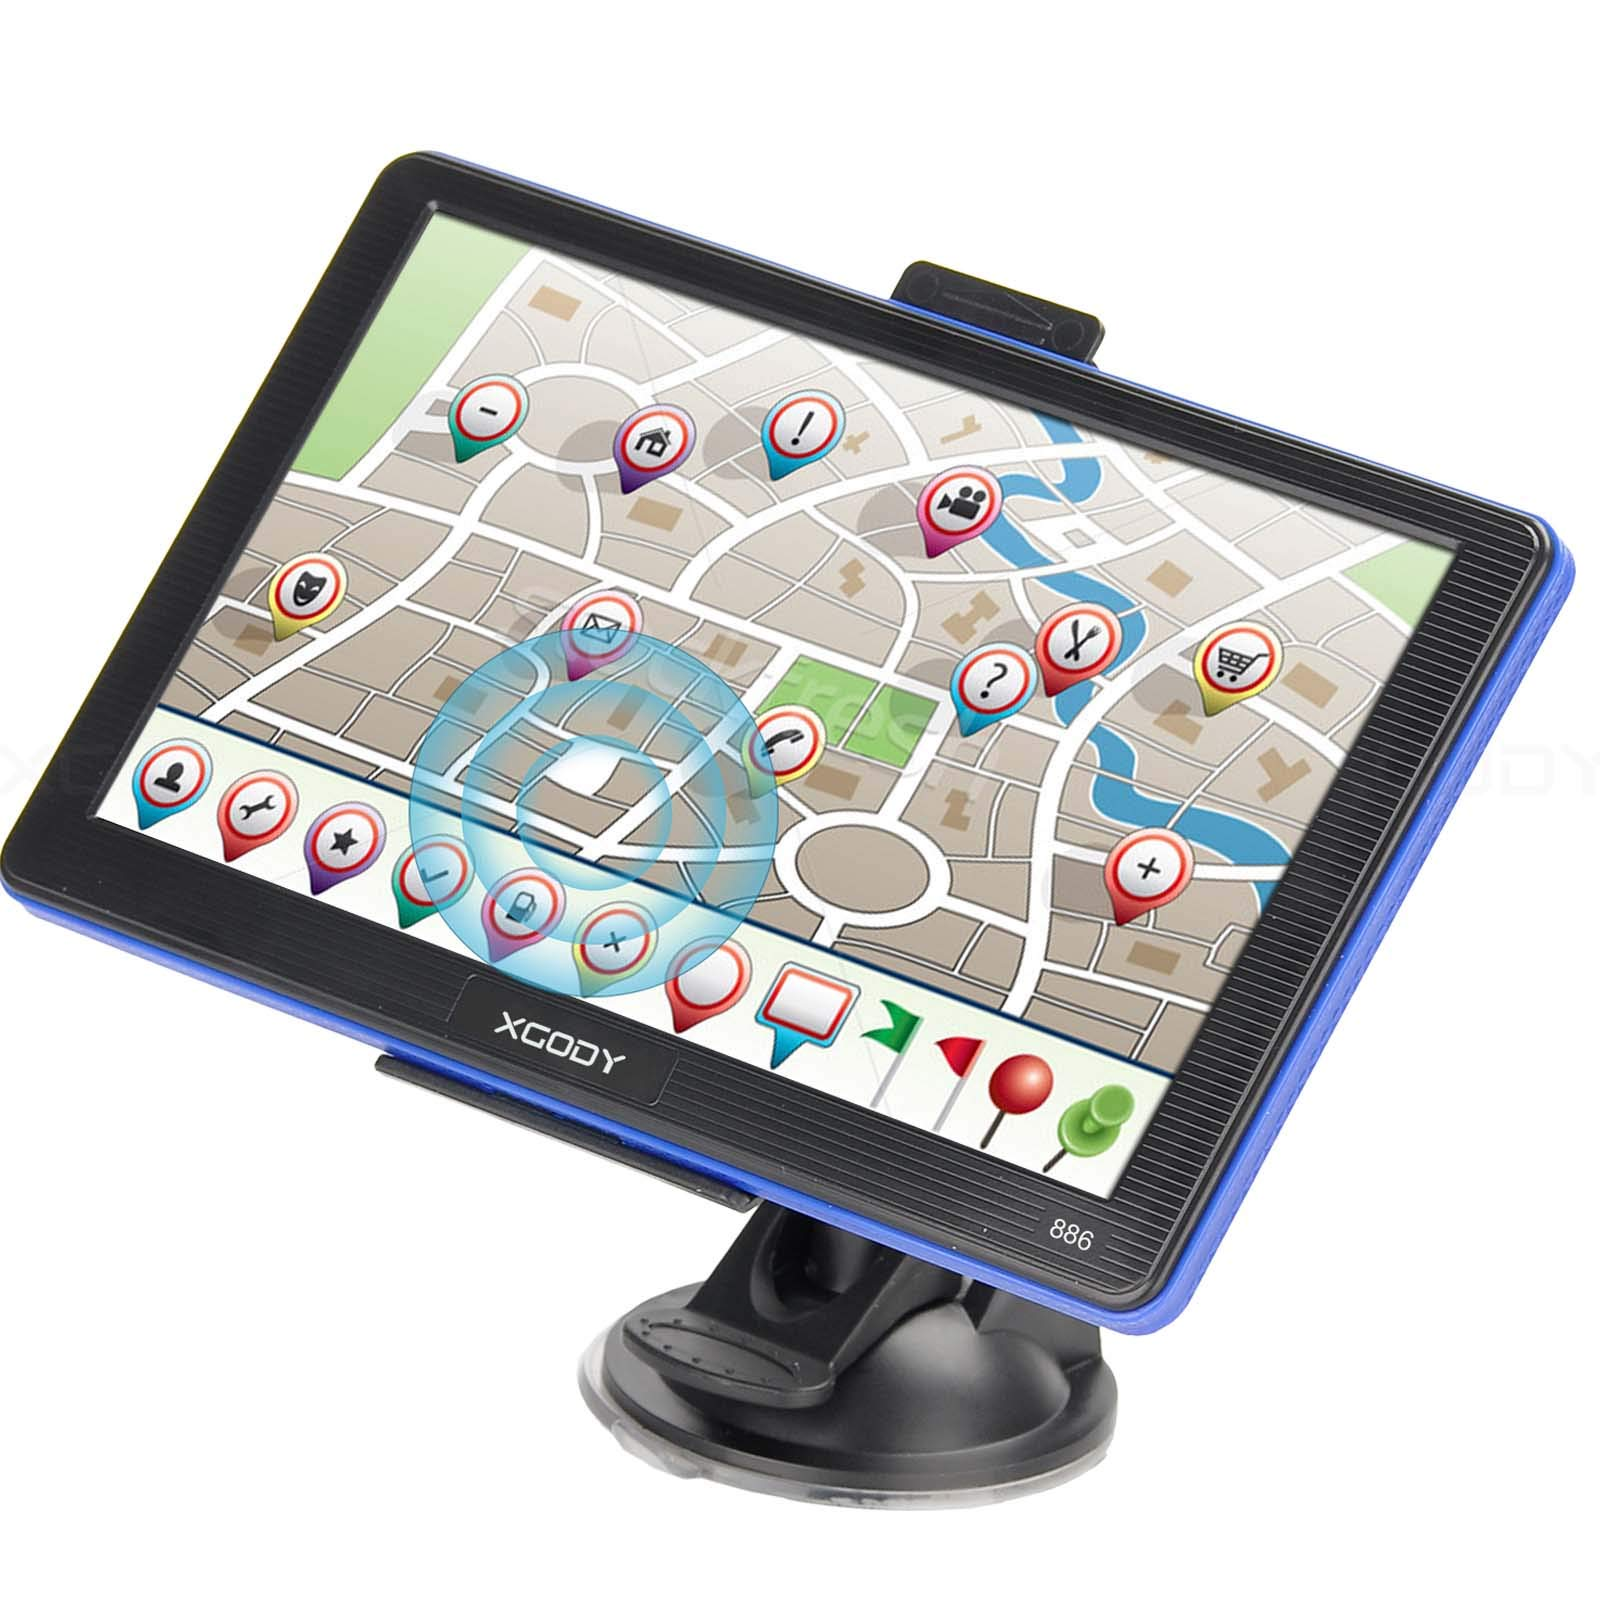 Truck GPS Navigation System Xgody 886 7 Inch Capacitive Touch Screen SAT NAV Navigator for Car with Lifetime US Maps Updated Sunshade Support Speed and Red light Warning by XGODY